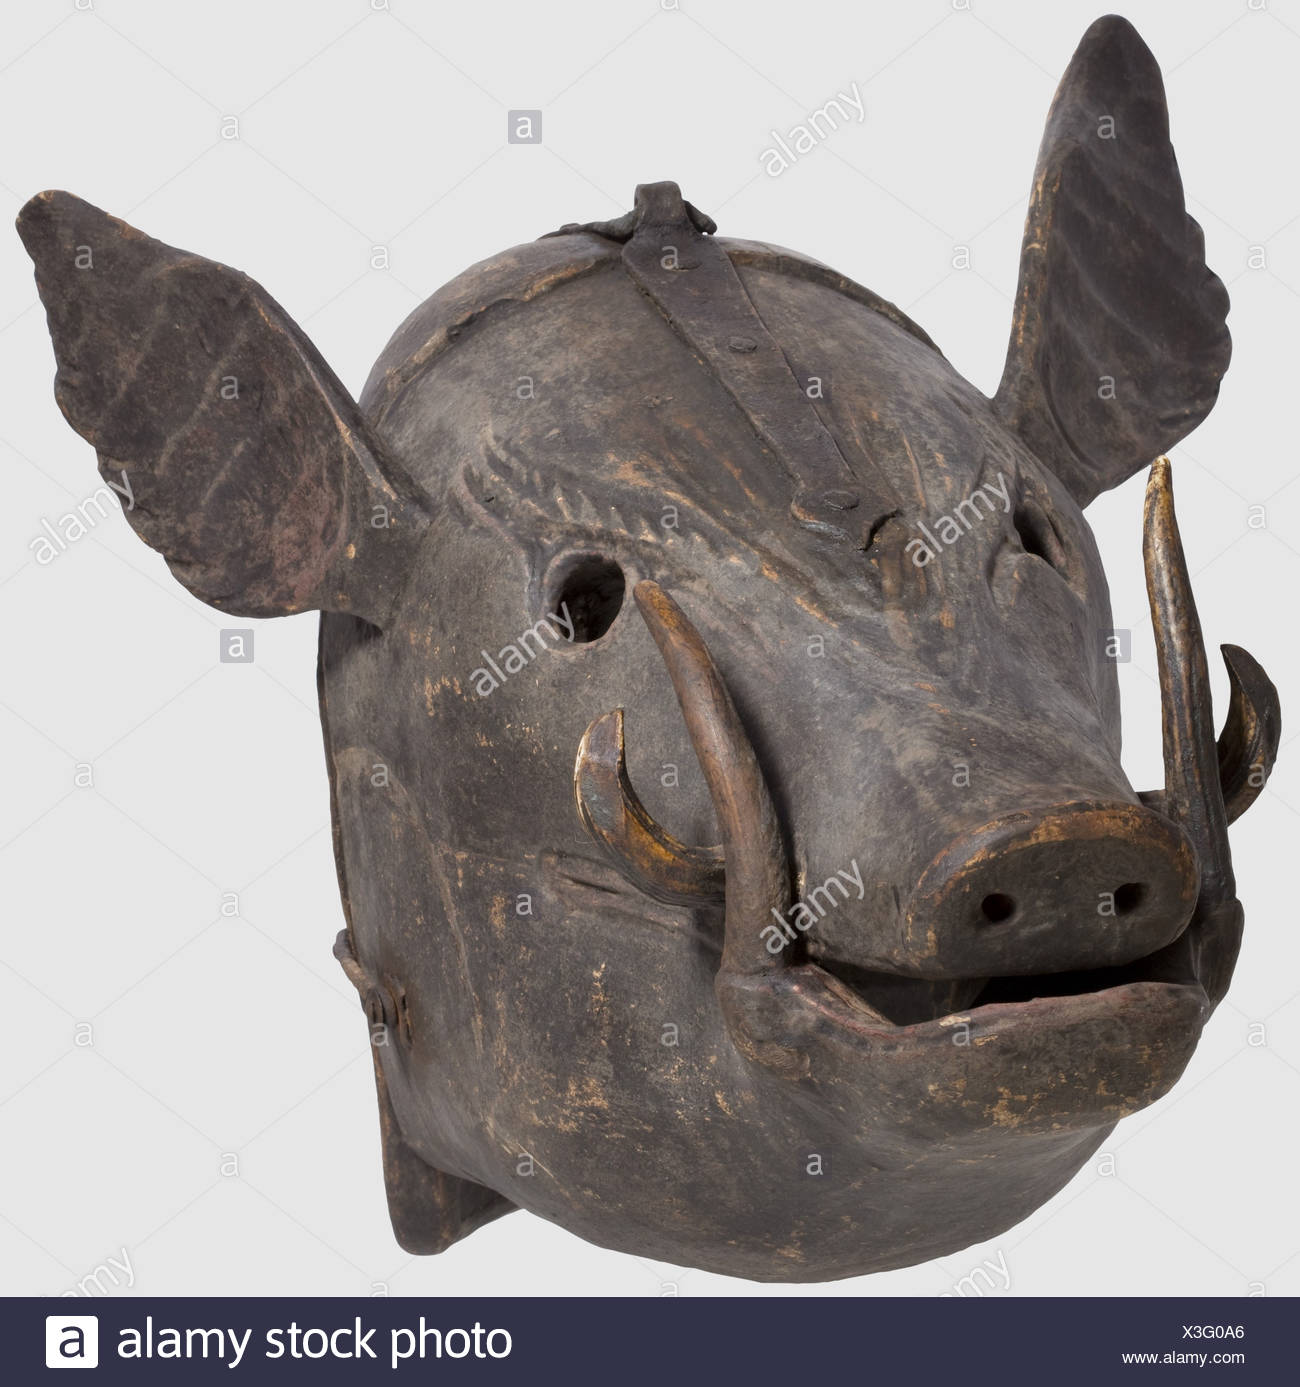 A German mask of shame, 17th/18th century. Carved wooden mask in the shape of a boar's head with inserted boar's teeth, the fangs made of stag horn, with attached flaring ears. The front and back piece connected at the crown by a wrought iron hinge and with a locking hook on the side. Dark, slightly worn paint. Length 48 cm, width 40 cm. Regarding material and design a rather unusual mask of shame, probably alluding to the delinquent's 'brutish' behaviour, historic, historical,, 18th century, 17th century, instrument of torture, torture device, instruments of t, Additional-Rights-Clearences-NA - Stock Image